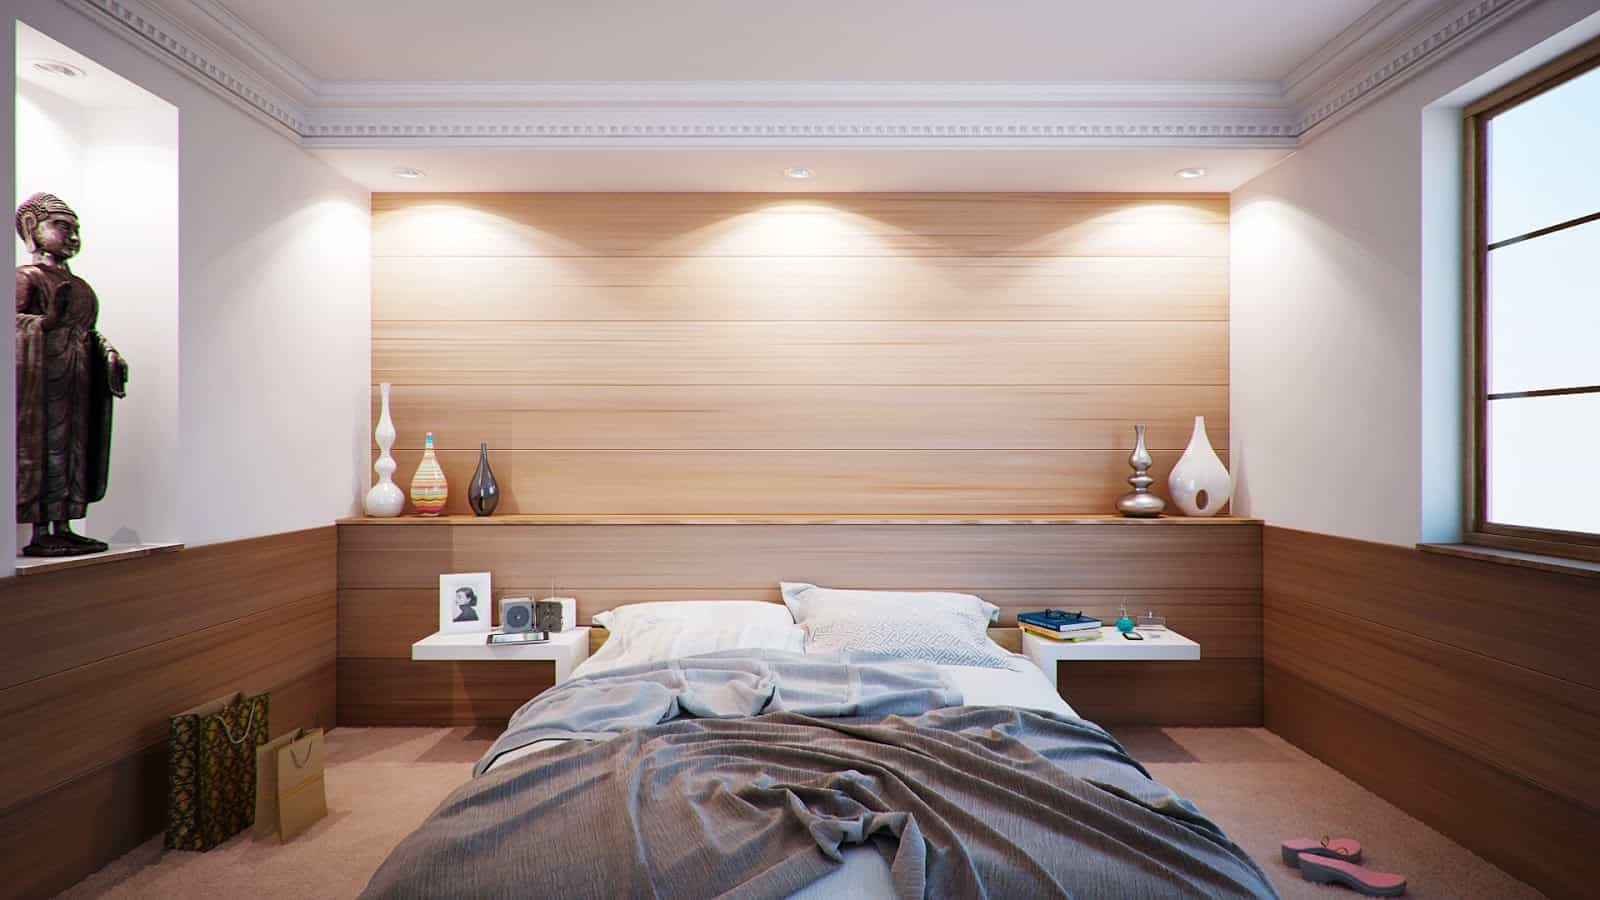 Turn your bedroom into a comfort heaven